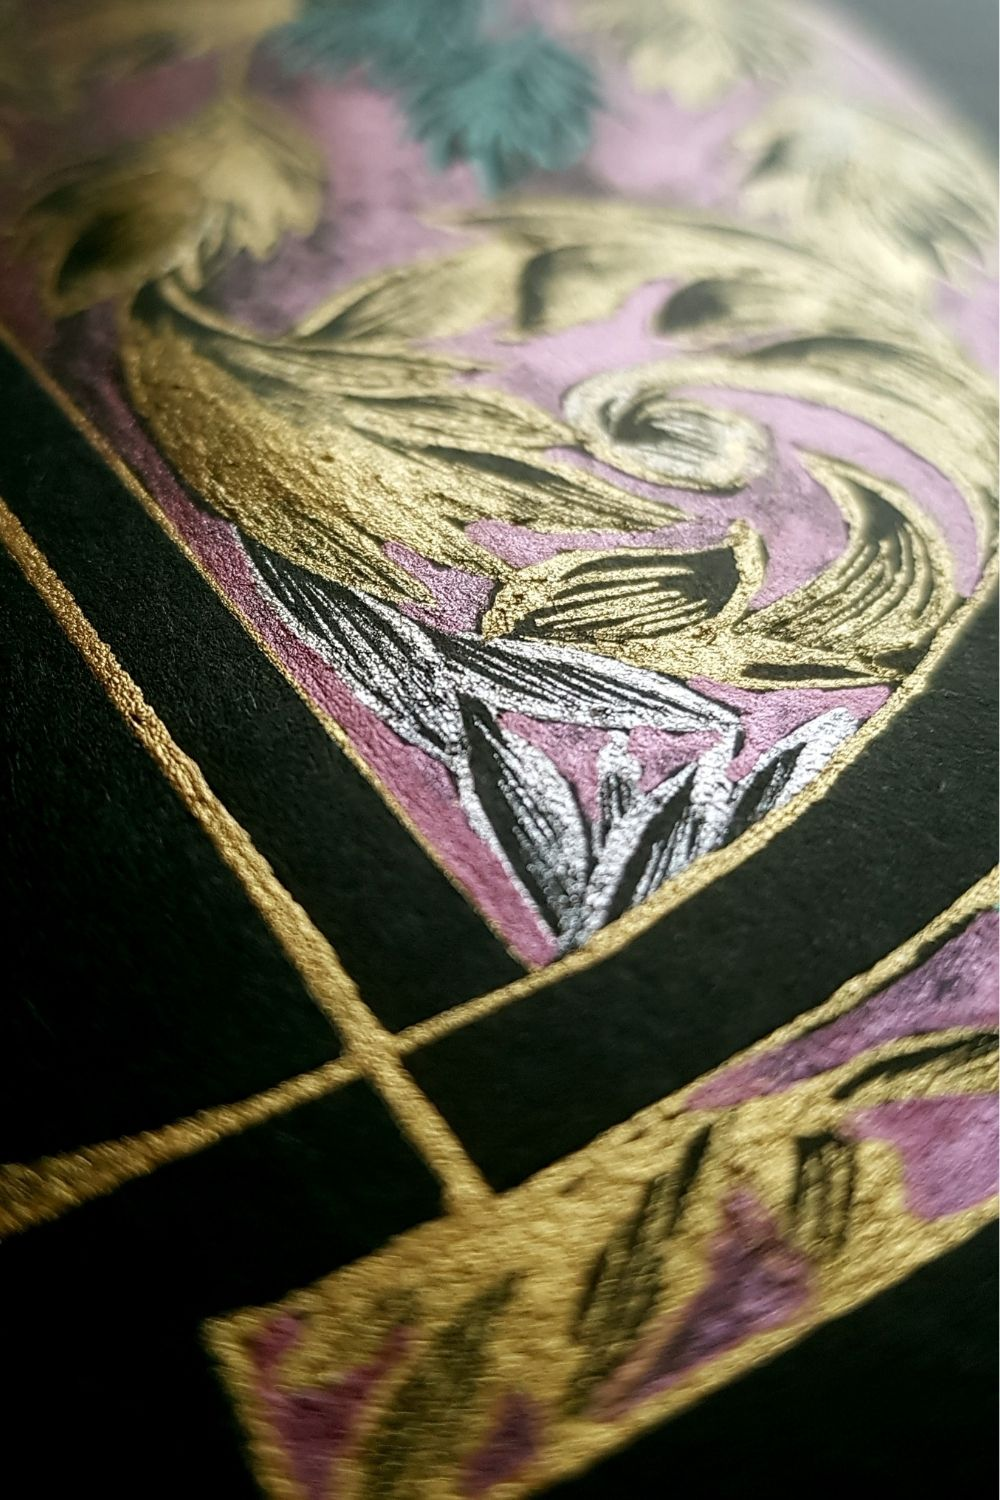 Luxury hand drawn logo design, inspired by a romantic baroque style design